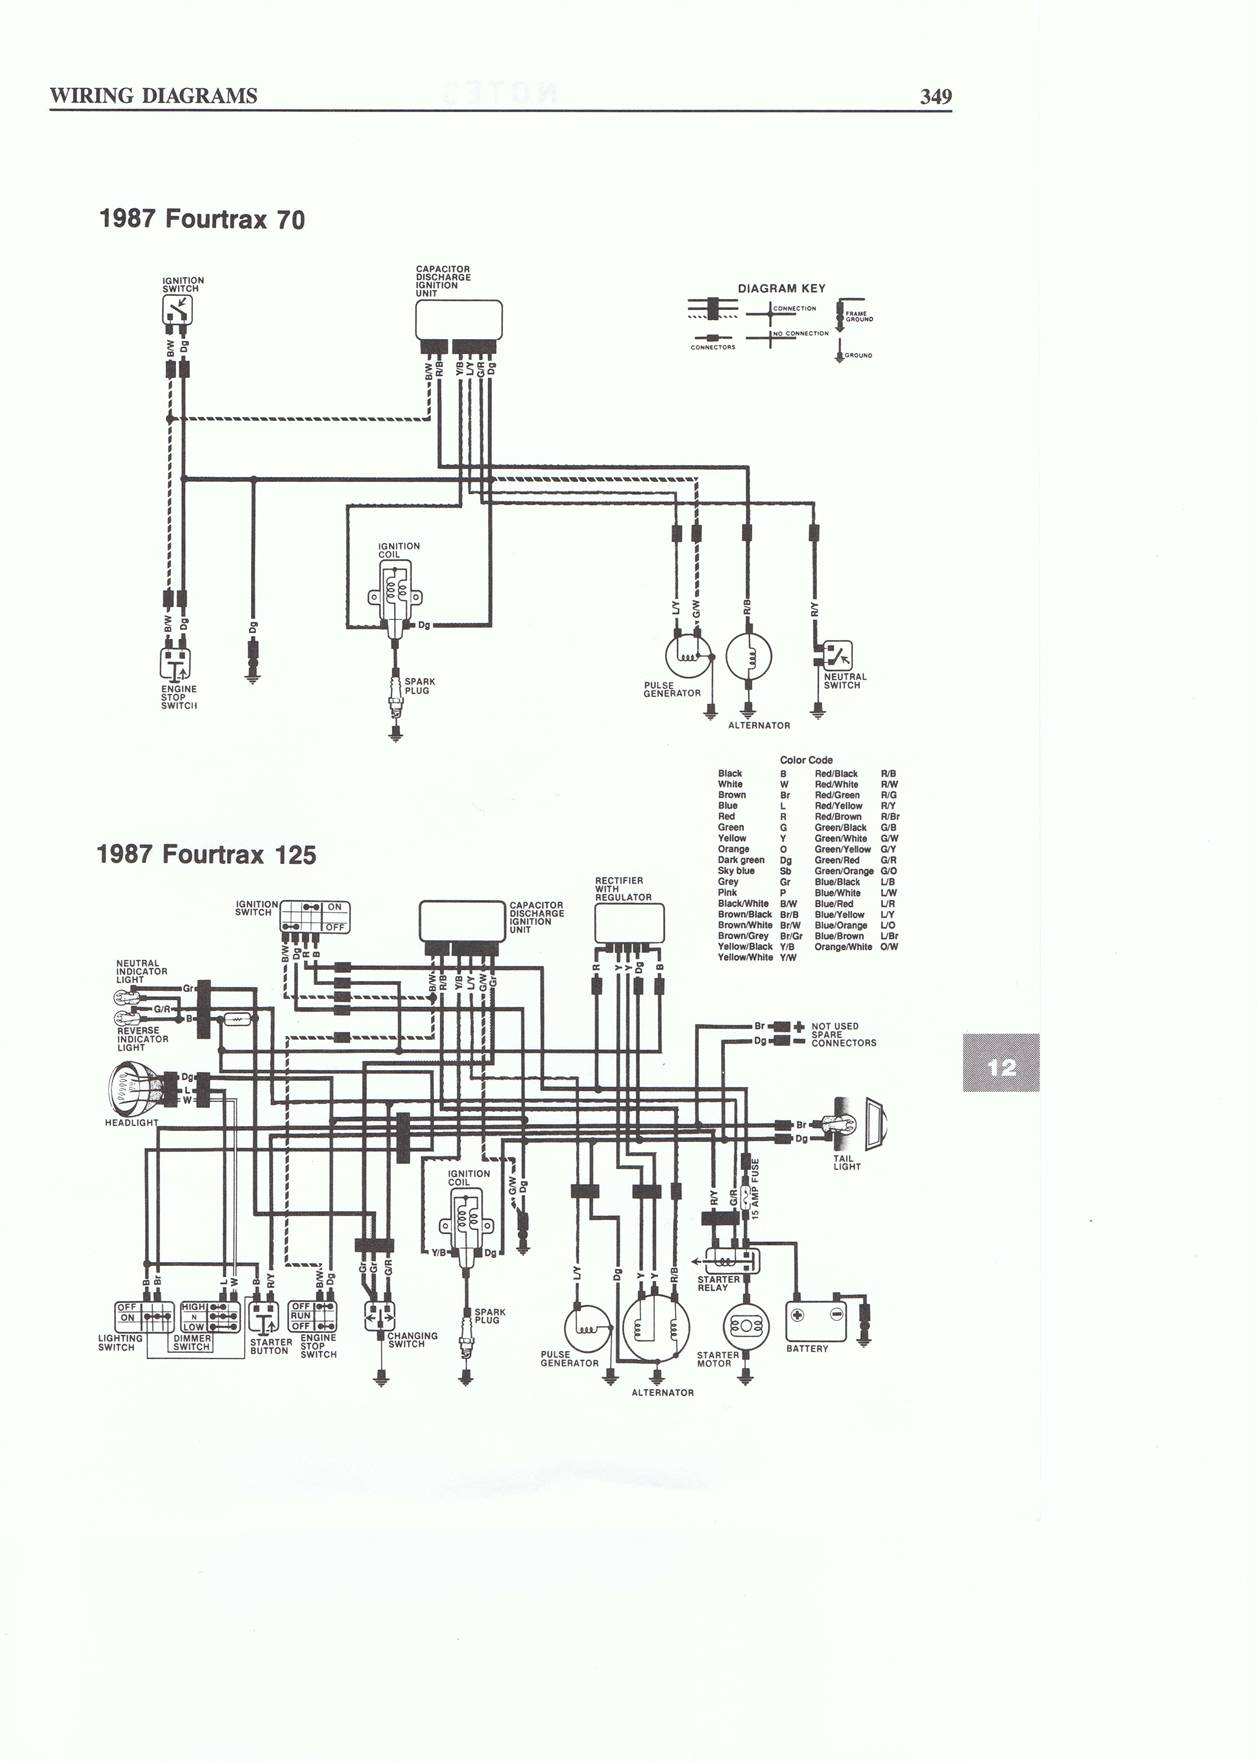 gy6 engine wiring diagram?t=1398725710 gy6 engine wiring diagram 150cc gy6 wiring diagram at reclaimingppi.co